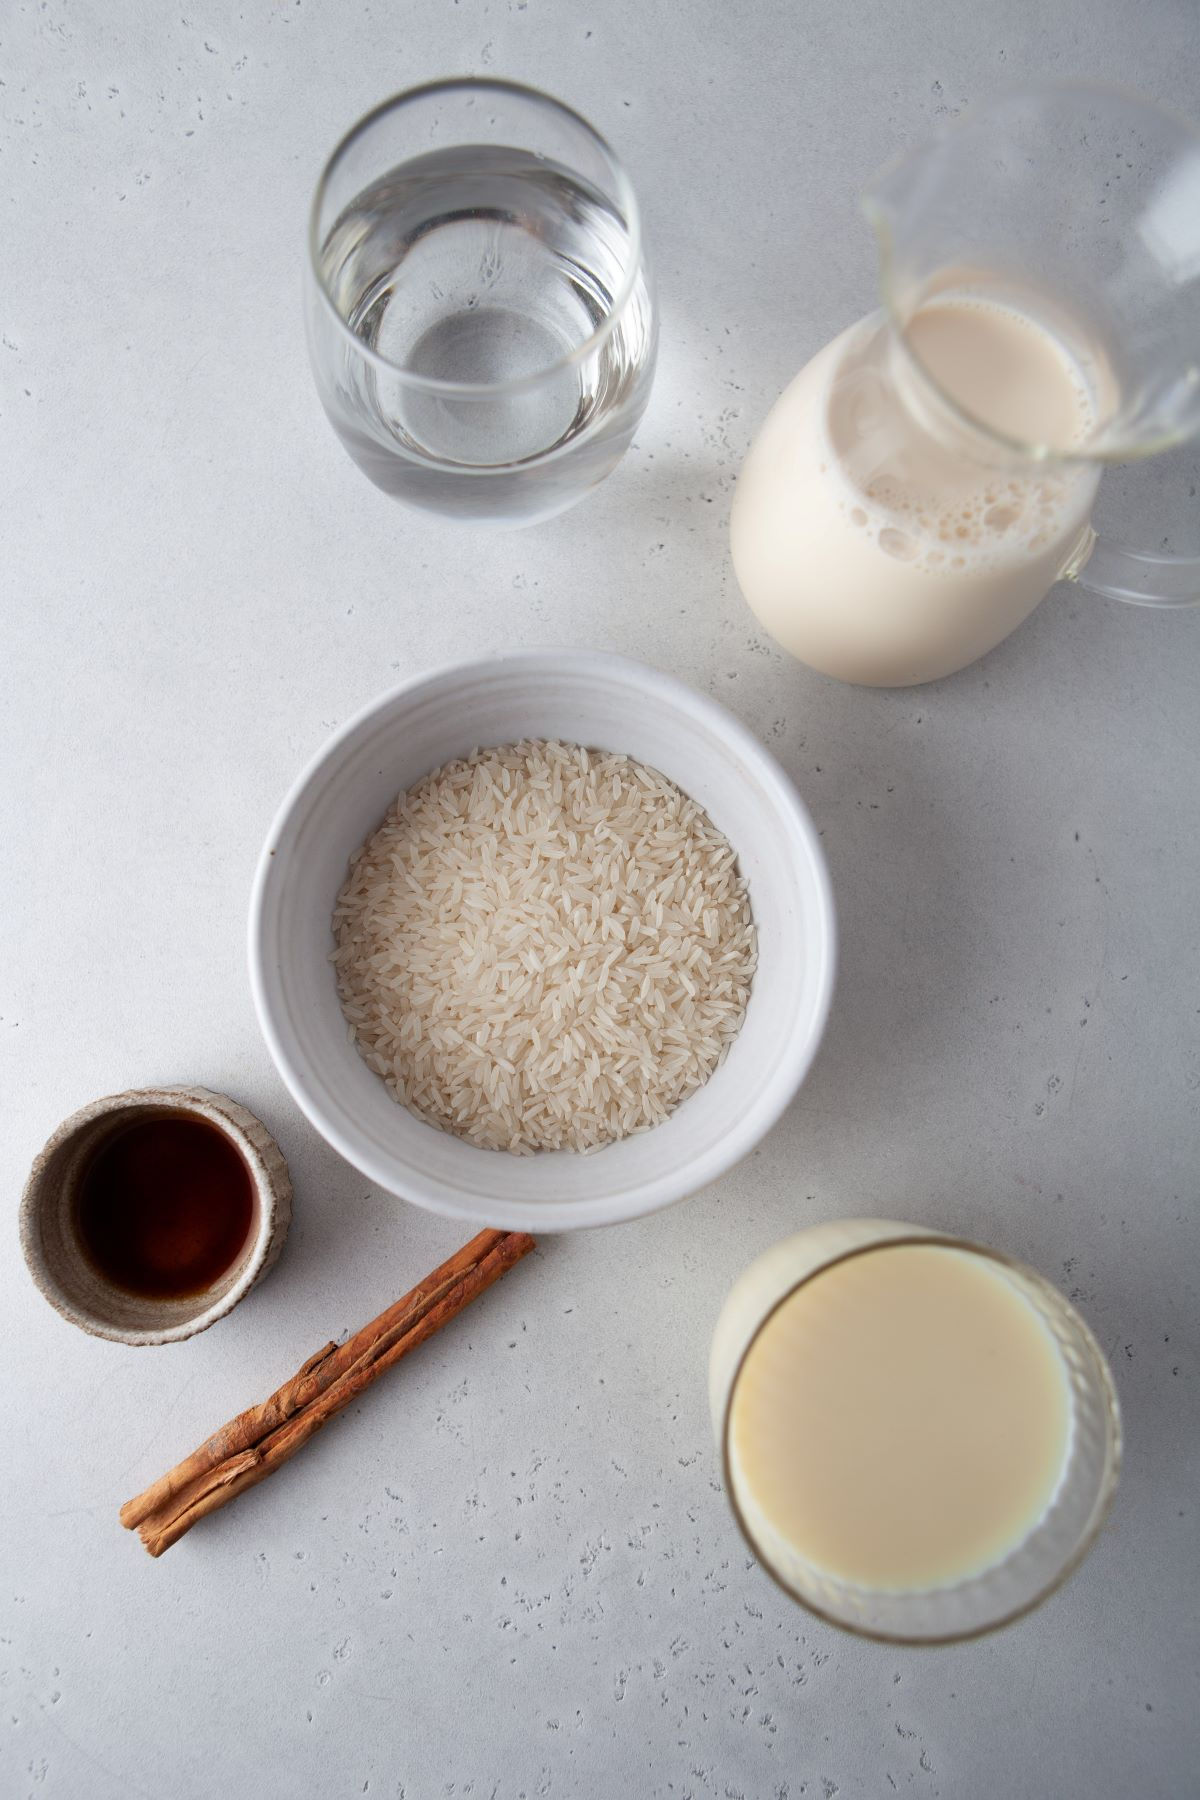 Ingredients used in making homemade horchata.